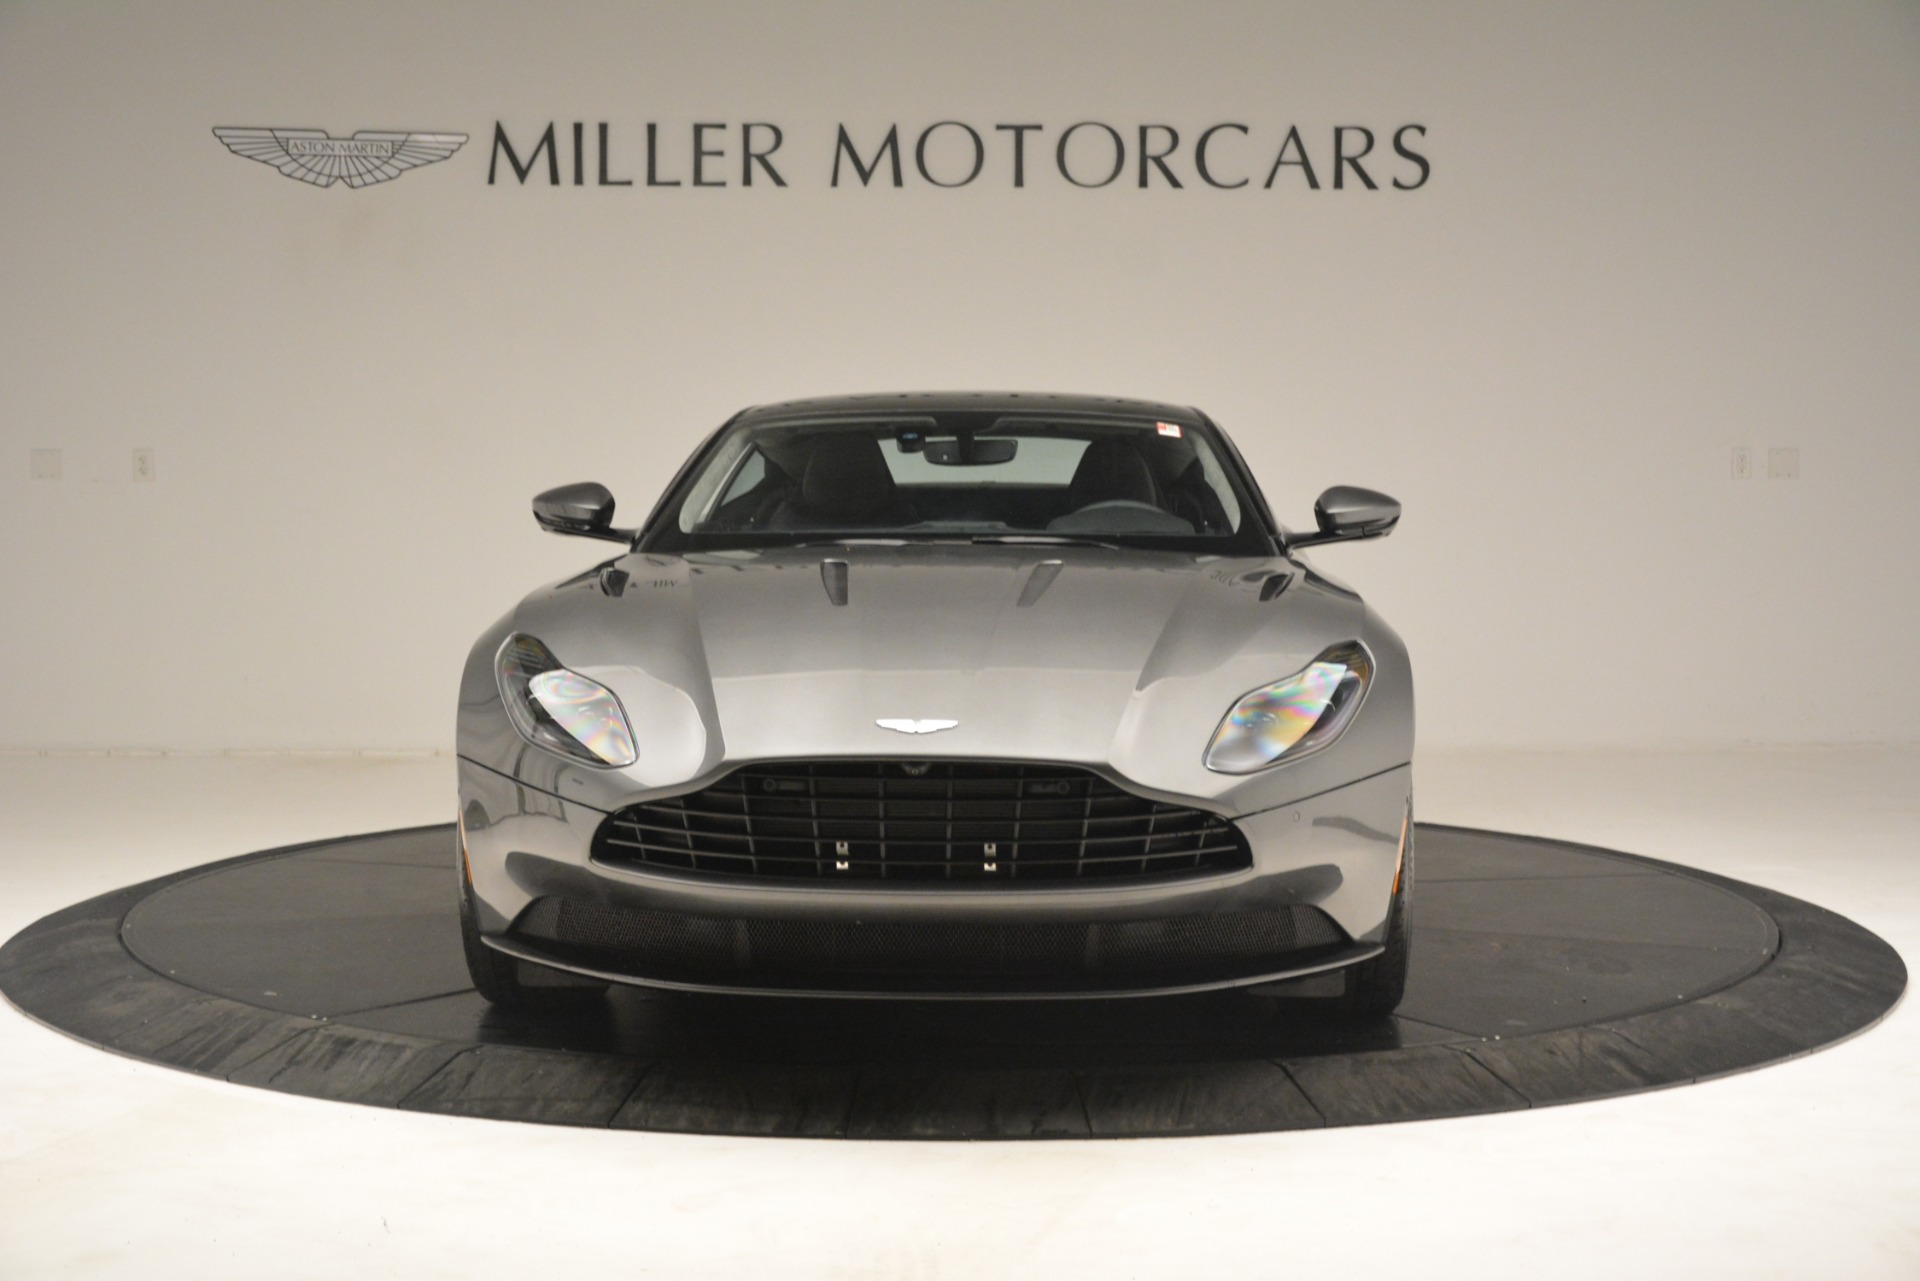 New 2019 Aston Martin DB11 V12 AMR Coupe For Sale In Westport, CT 3123_p12